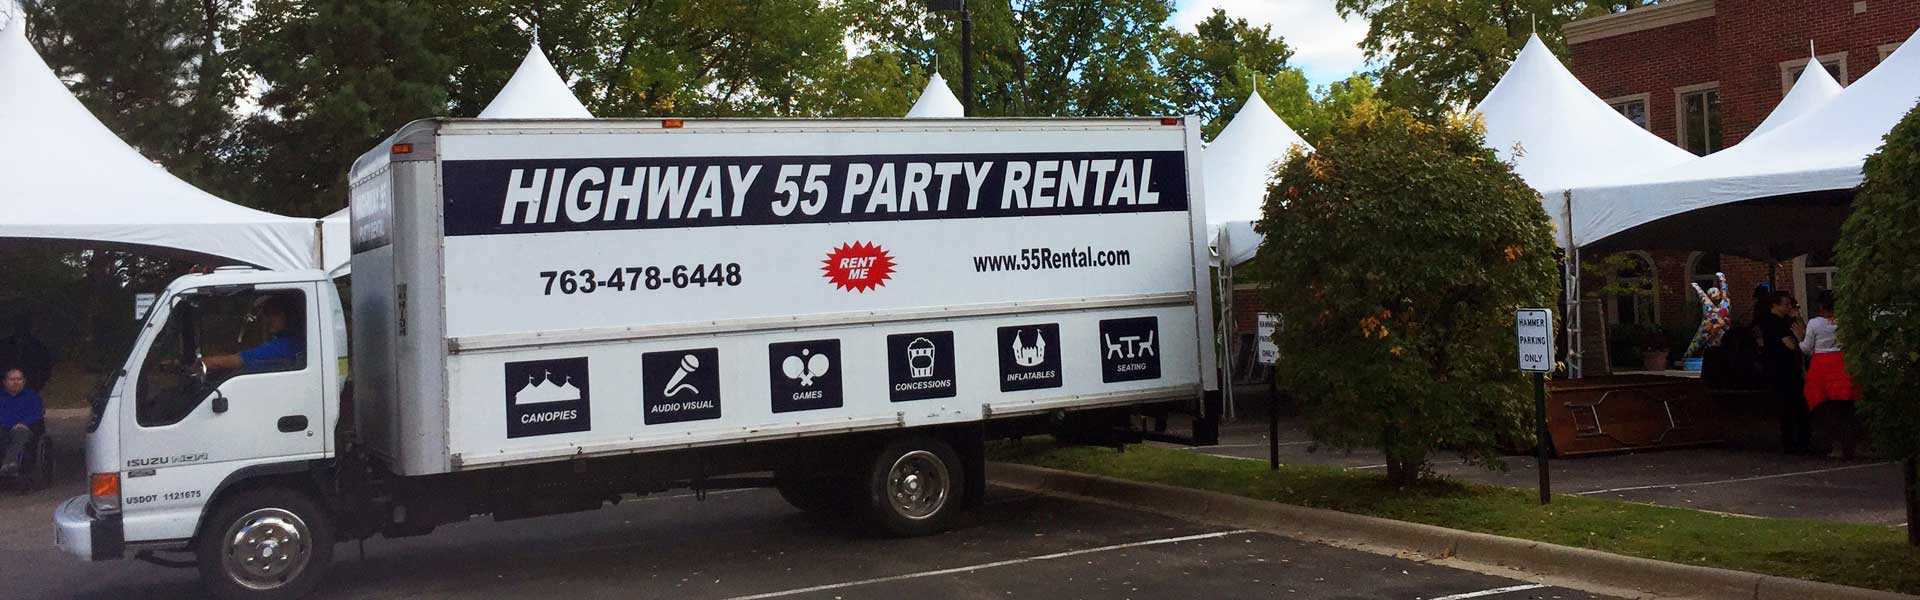 Corporate event rentals Plymouth MN